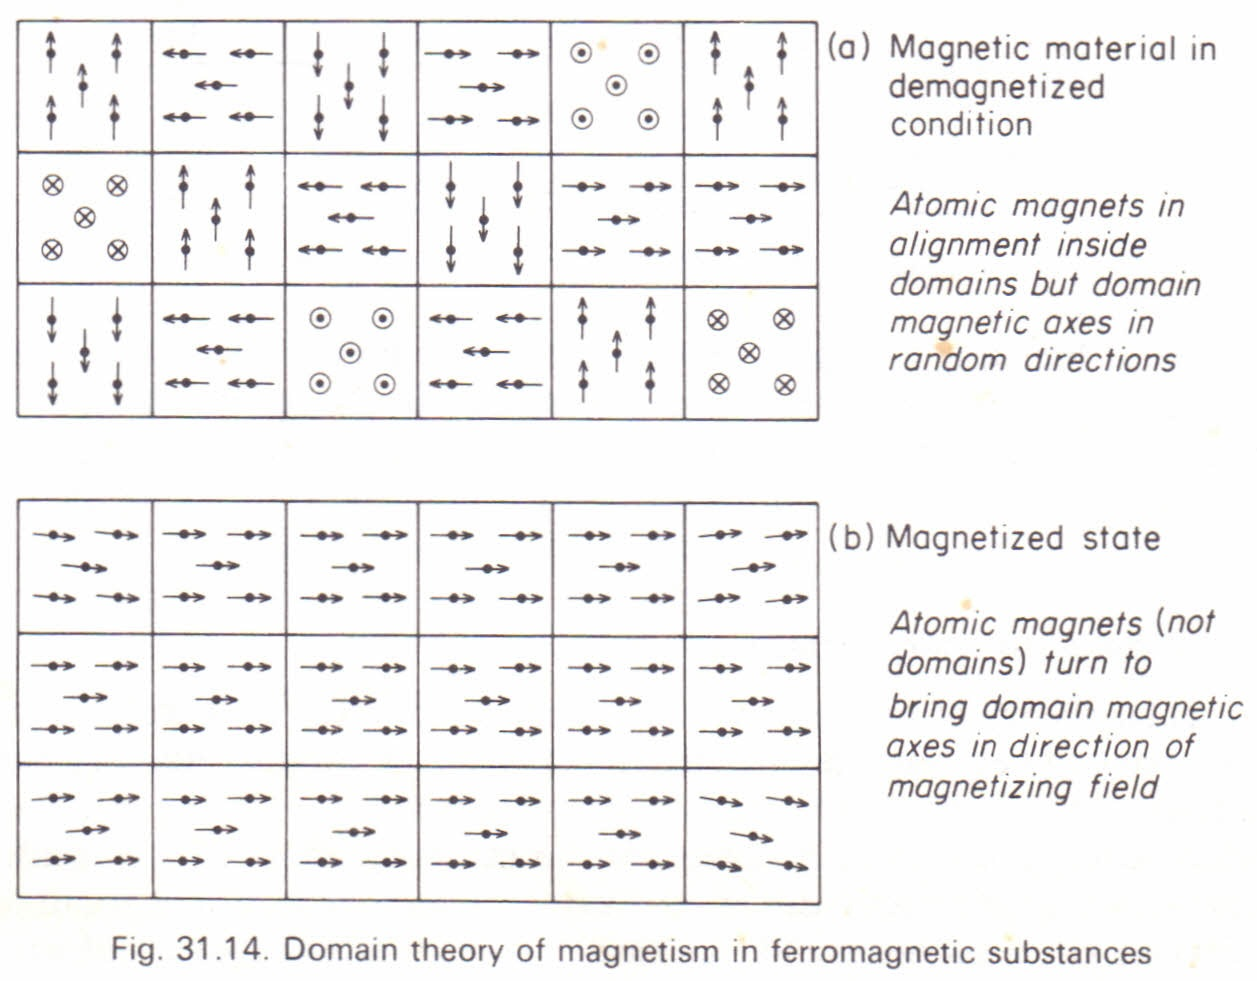 ferromagnetism the theory of magnetism physics homework ferromagnetism the theory of magnetism